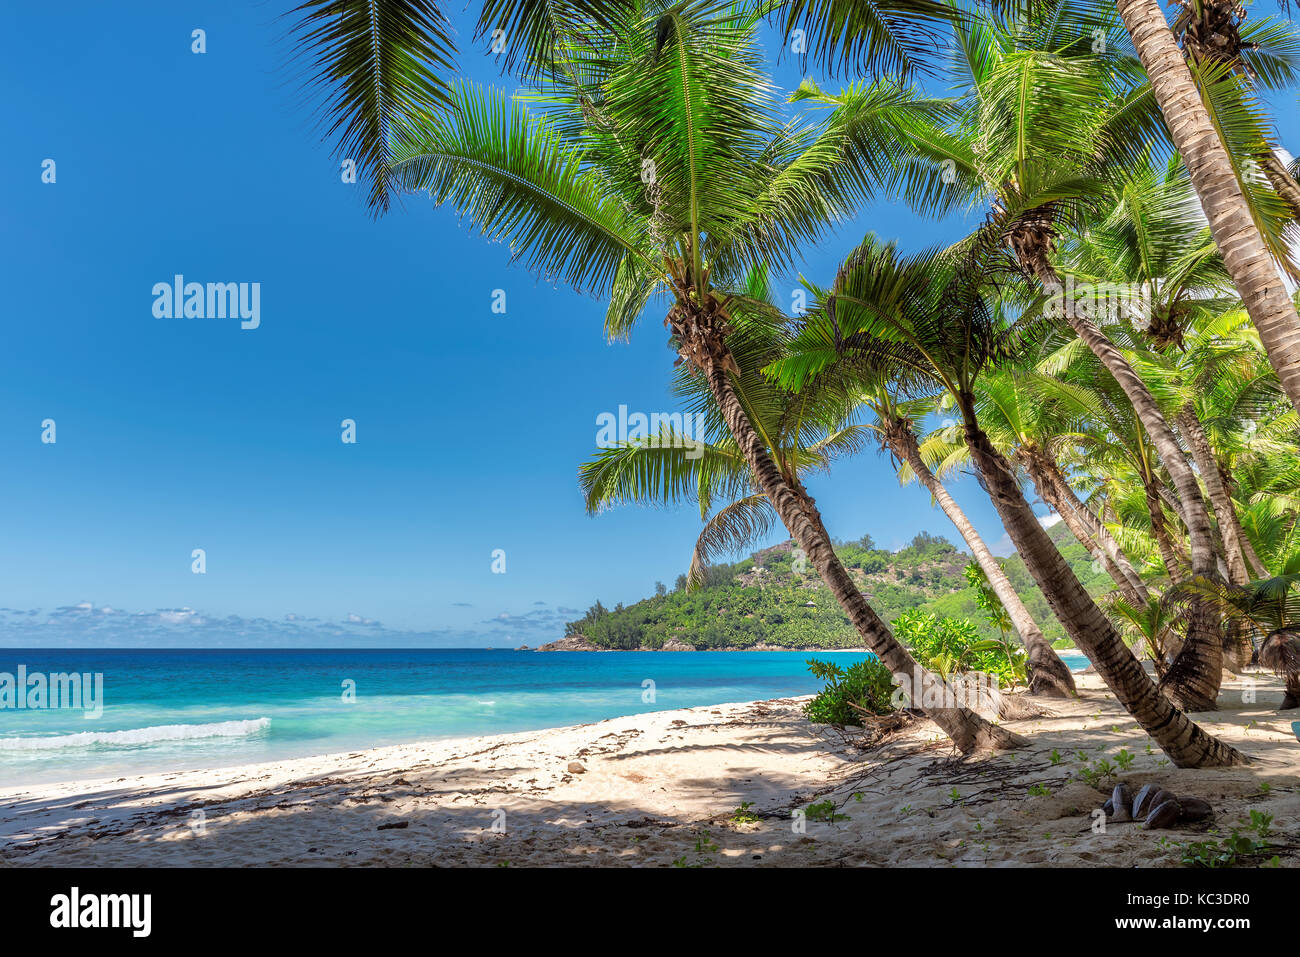 Landscape of paradise tropical island. Holiday and vacation concept. - Stock Image